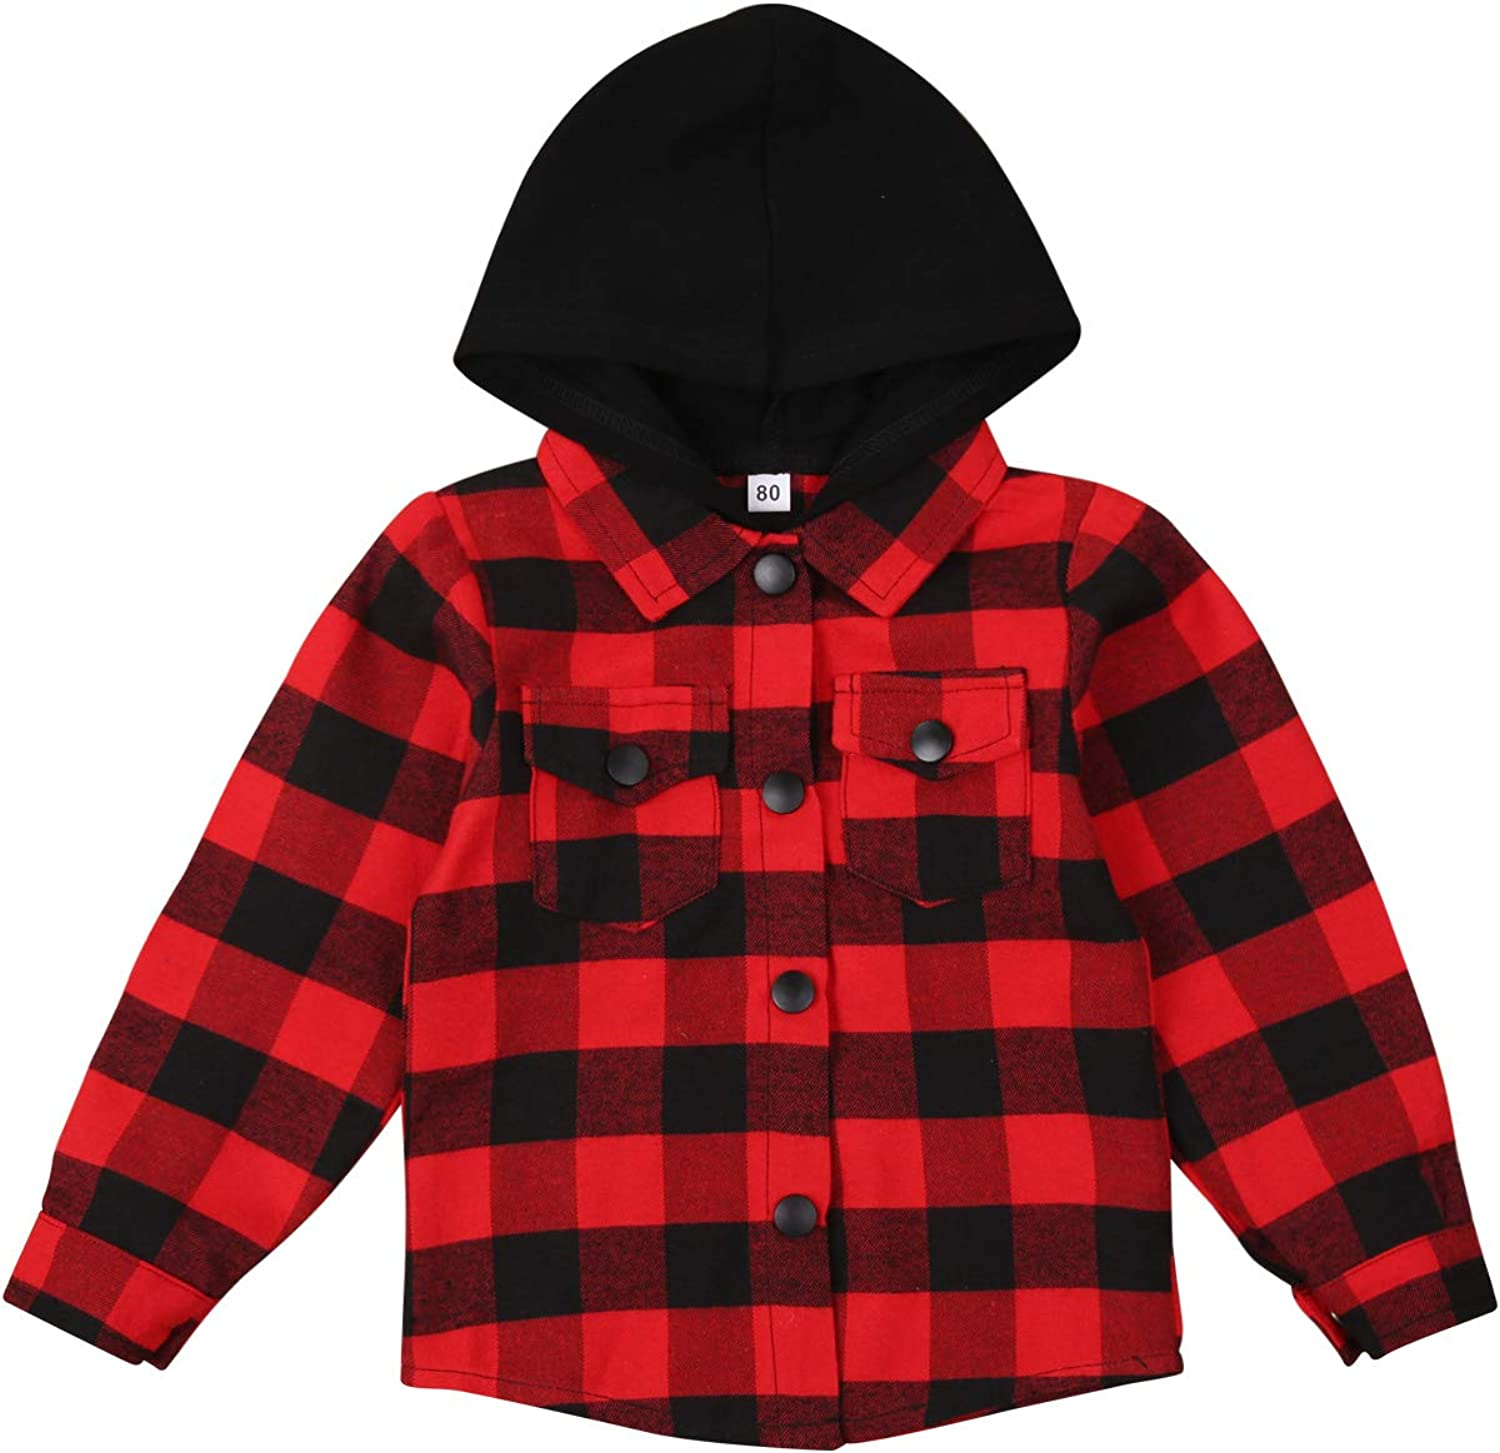 Toddler Unisex Baby Boys Girls Plaid Shirt Coat Long Sleeve Single-Breasted Hoodie with Flap Pockets